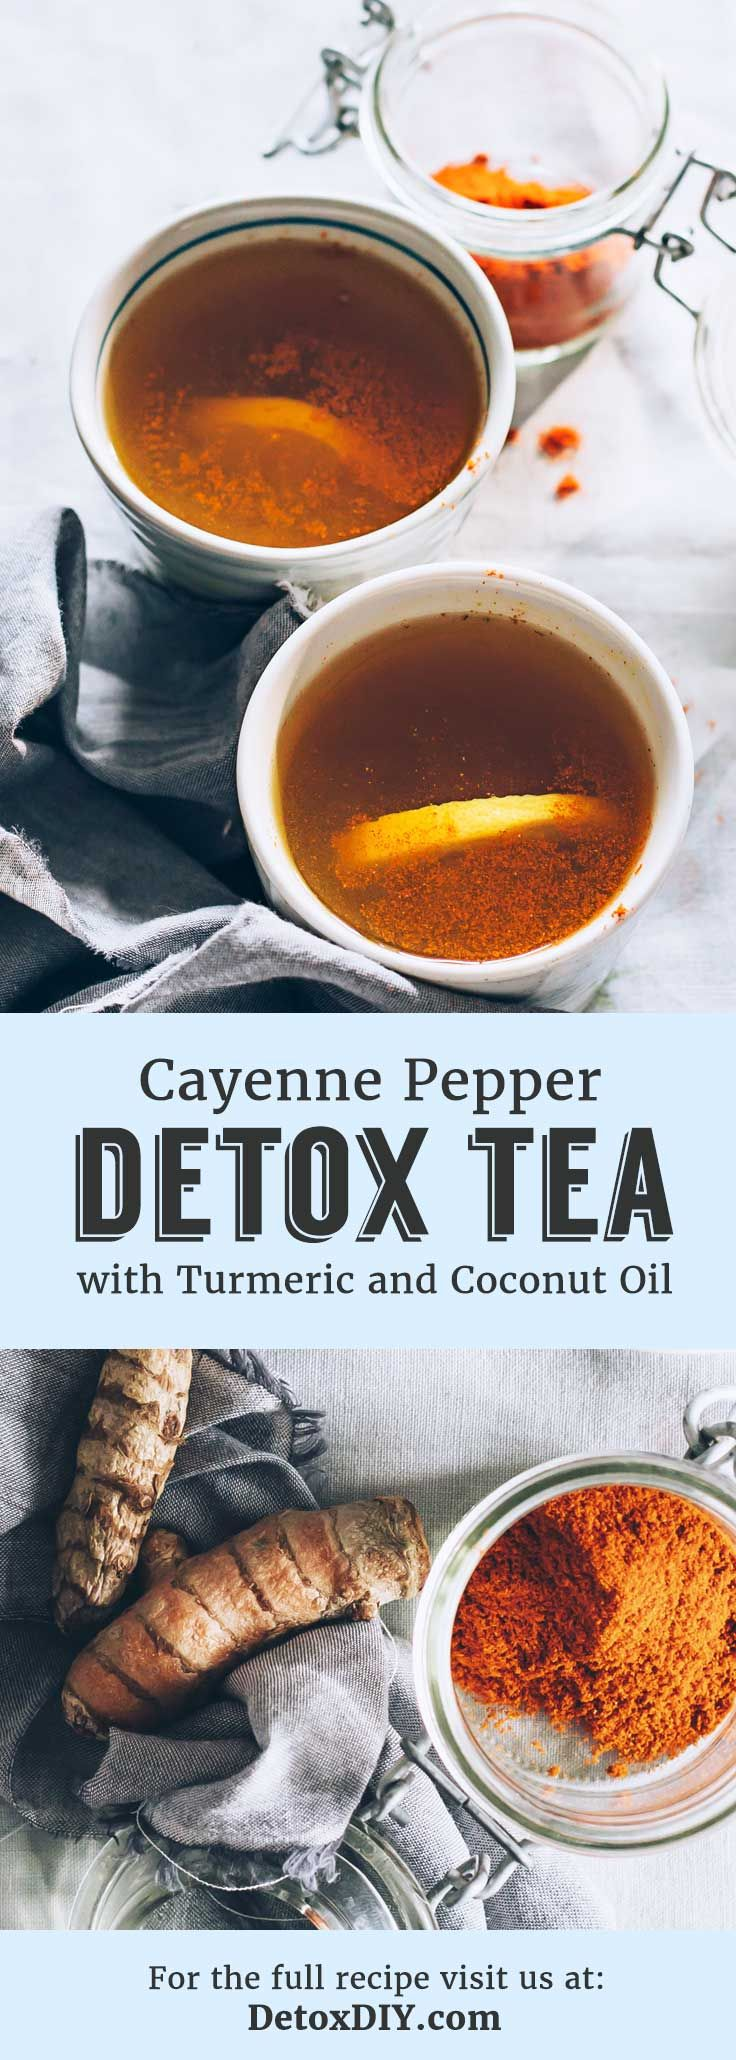 Cayenne pepper detox tea with turmeric and coconut oil